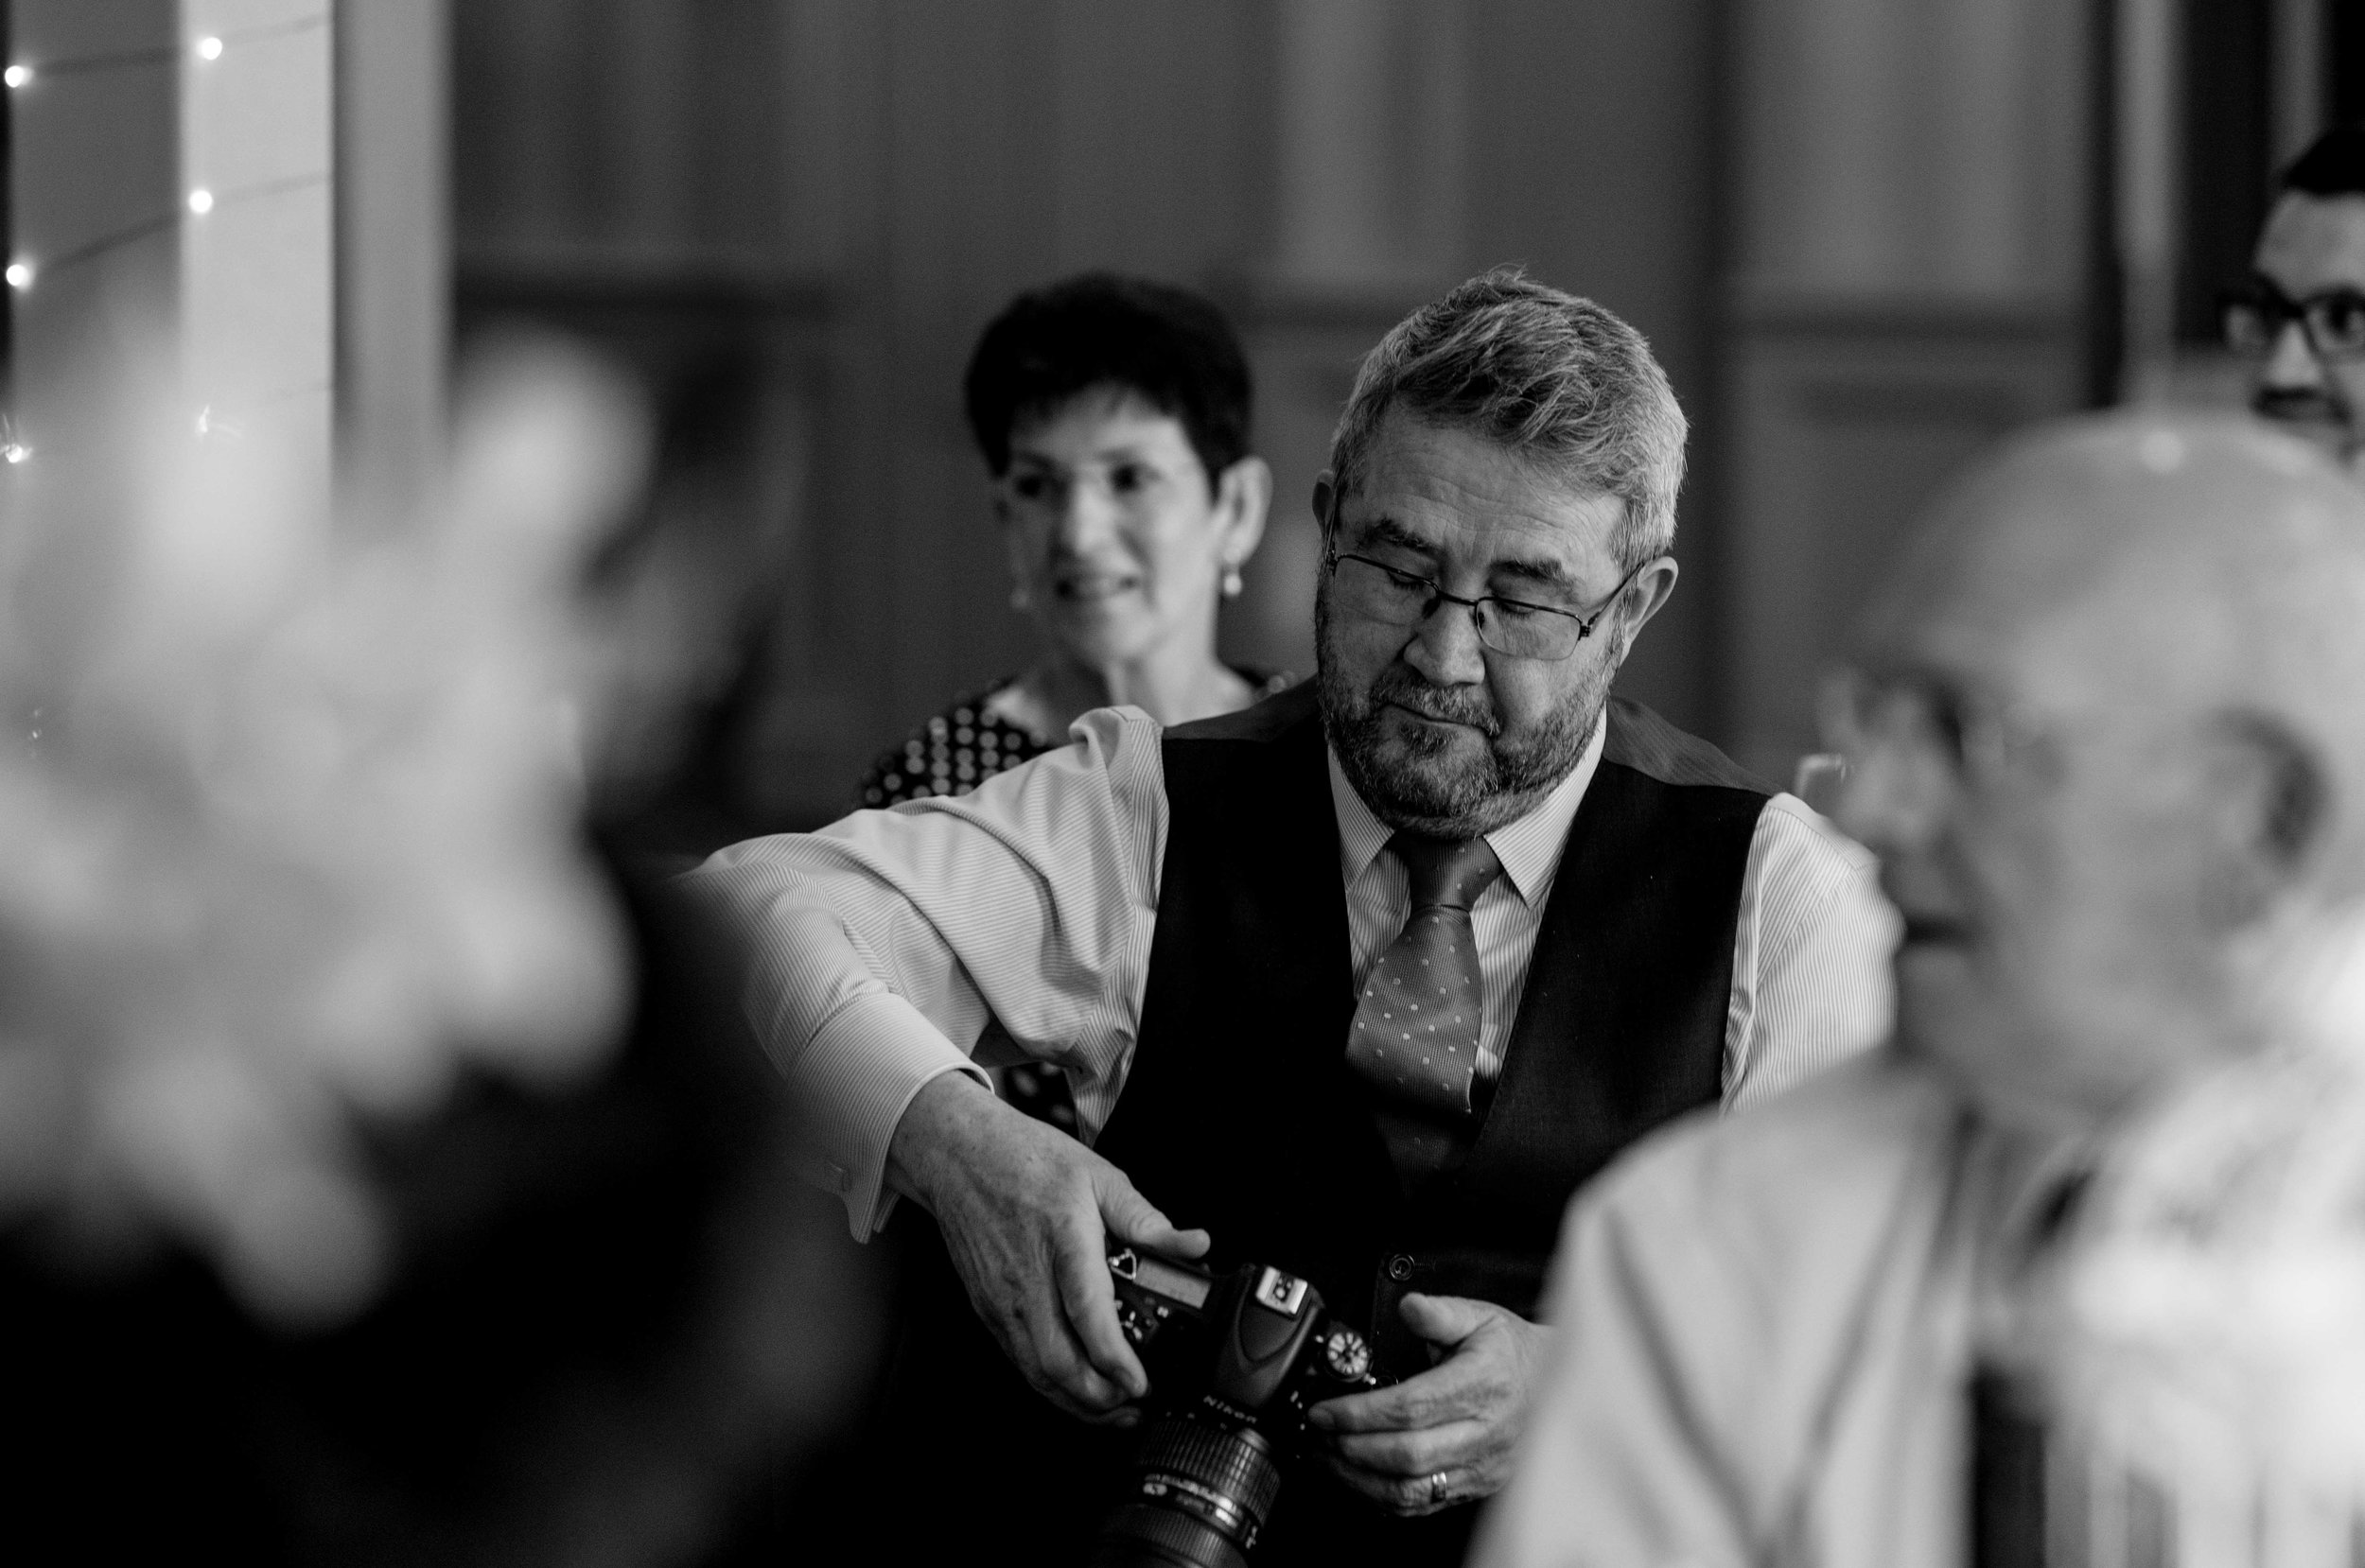 A wedding guest looks at his camera during the speeches